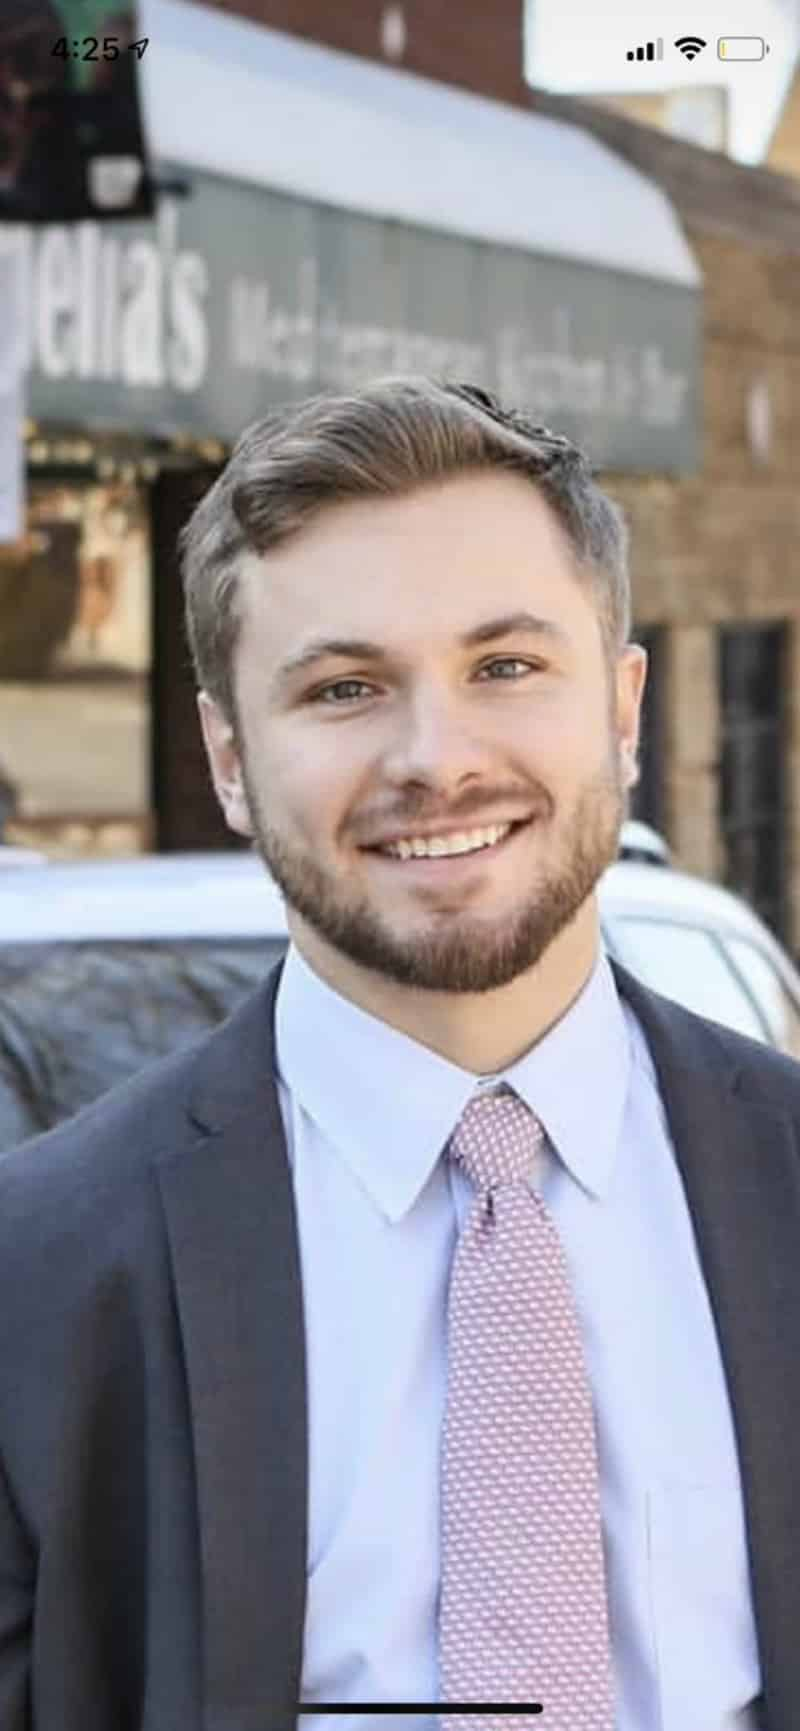 A woman in Texas has taken to Twitter to expose a man, now identified as Luke Luechtefeld, who allegedly touched her without consent in public after pulling down her outfit as she walked out of a bar with a group of friends last week.